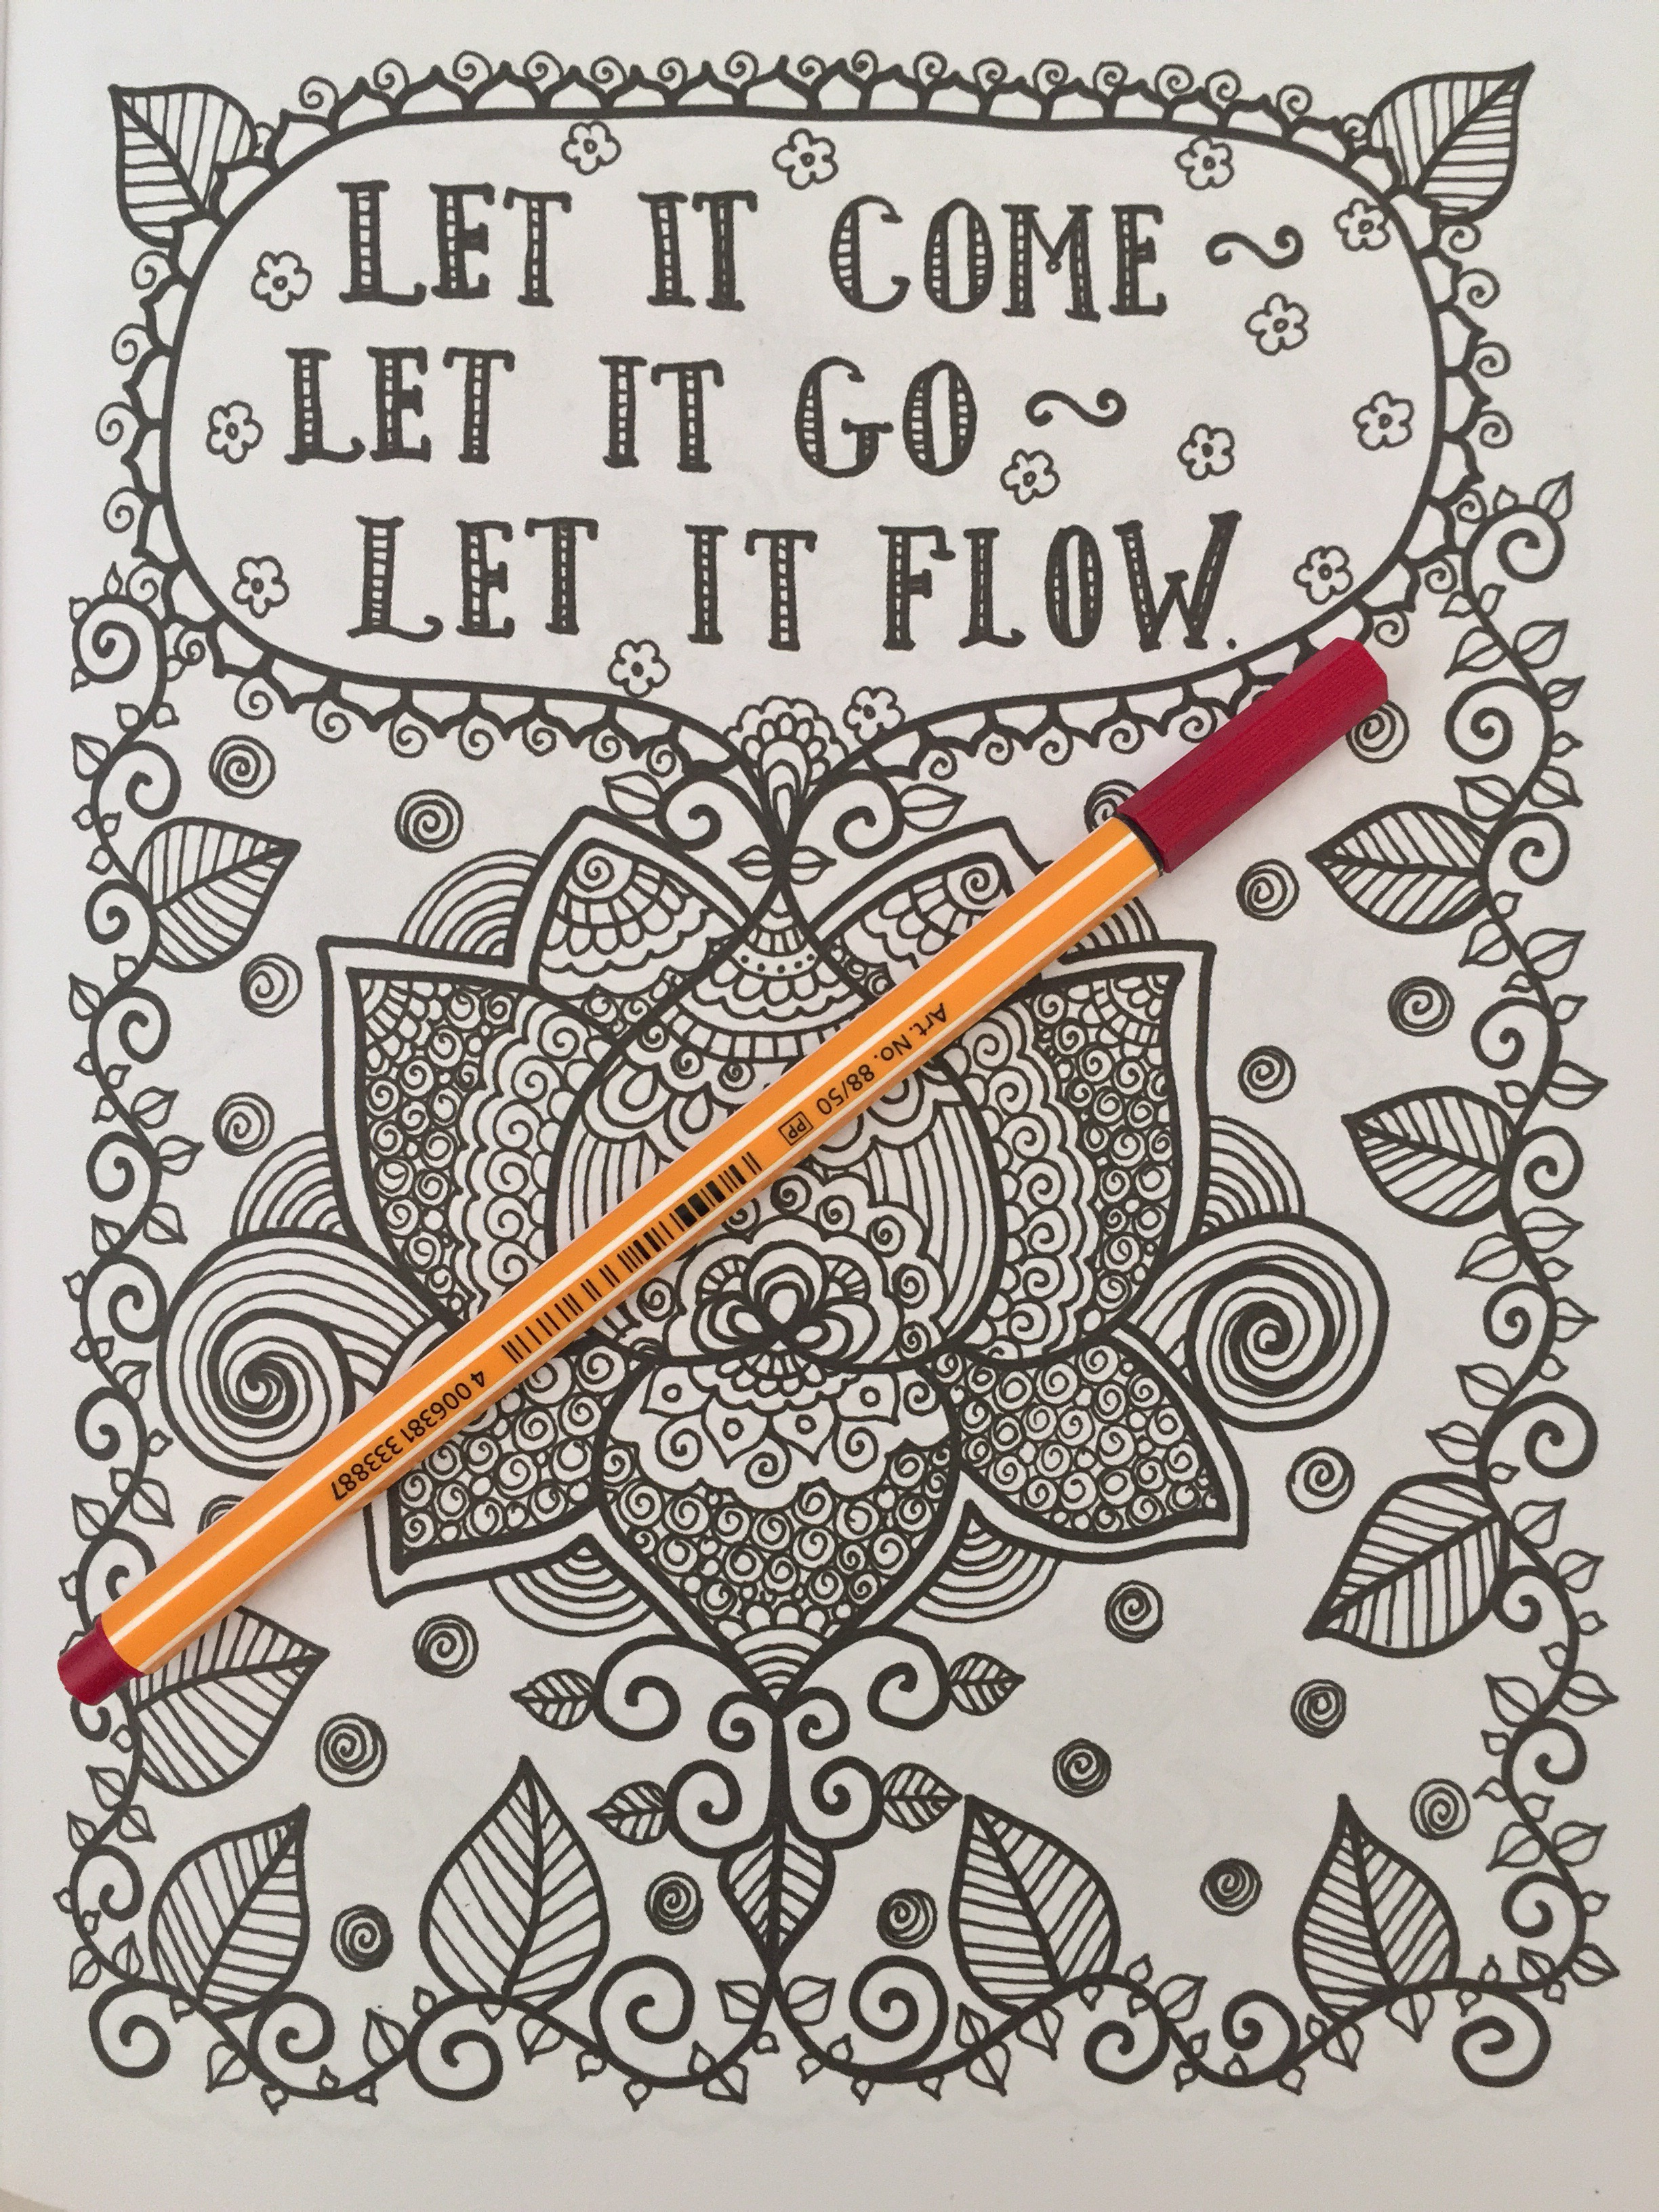 Adult coloring book with quotes - Coloring Inspirational Quotes Adult Colouring Therapy Stress Relief Art Therapy Managament Colour Color Pencils Reviews Books